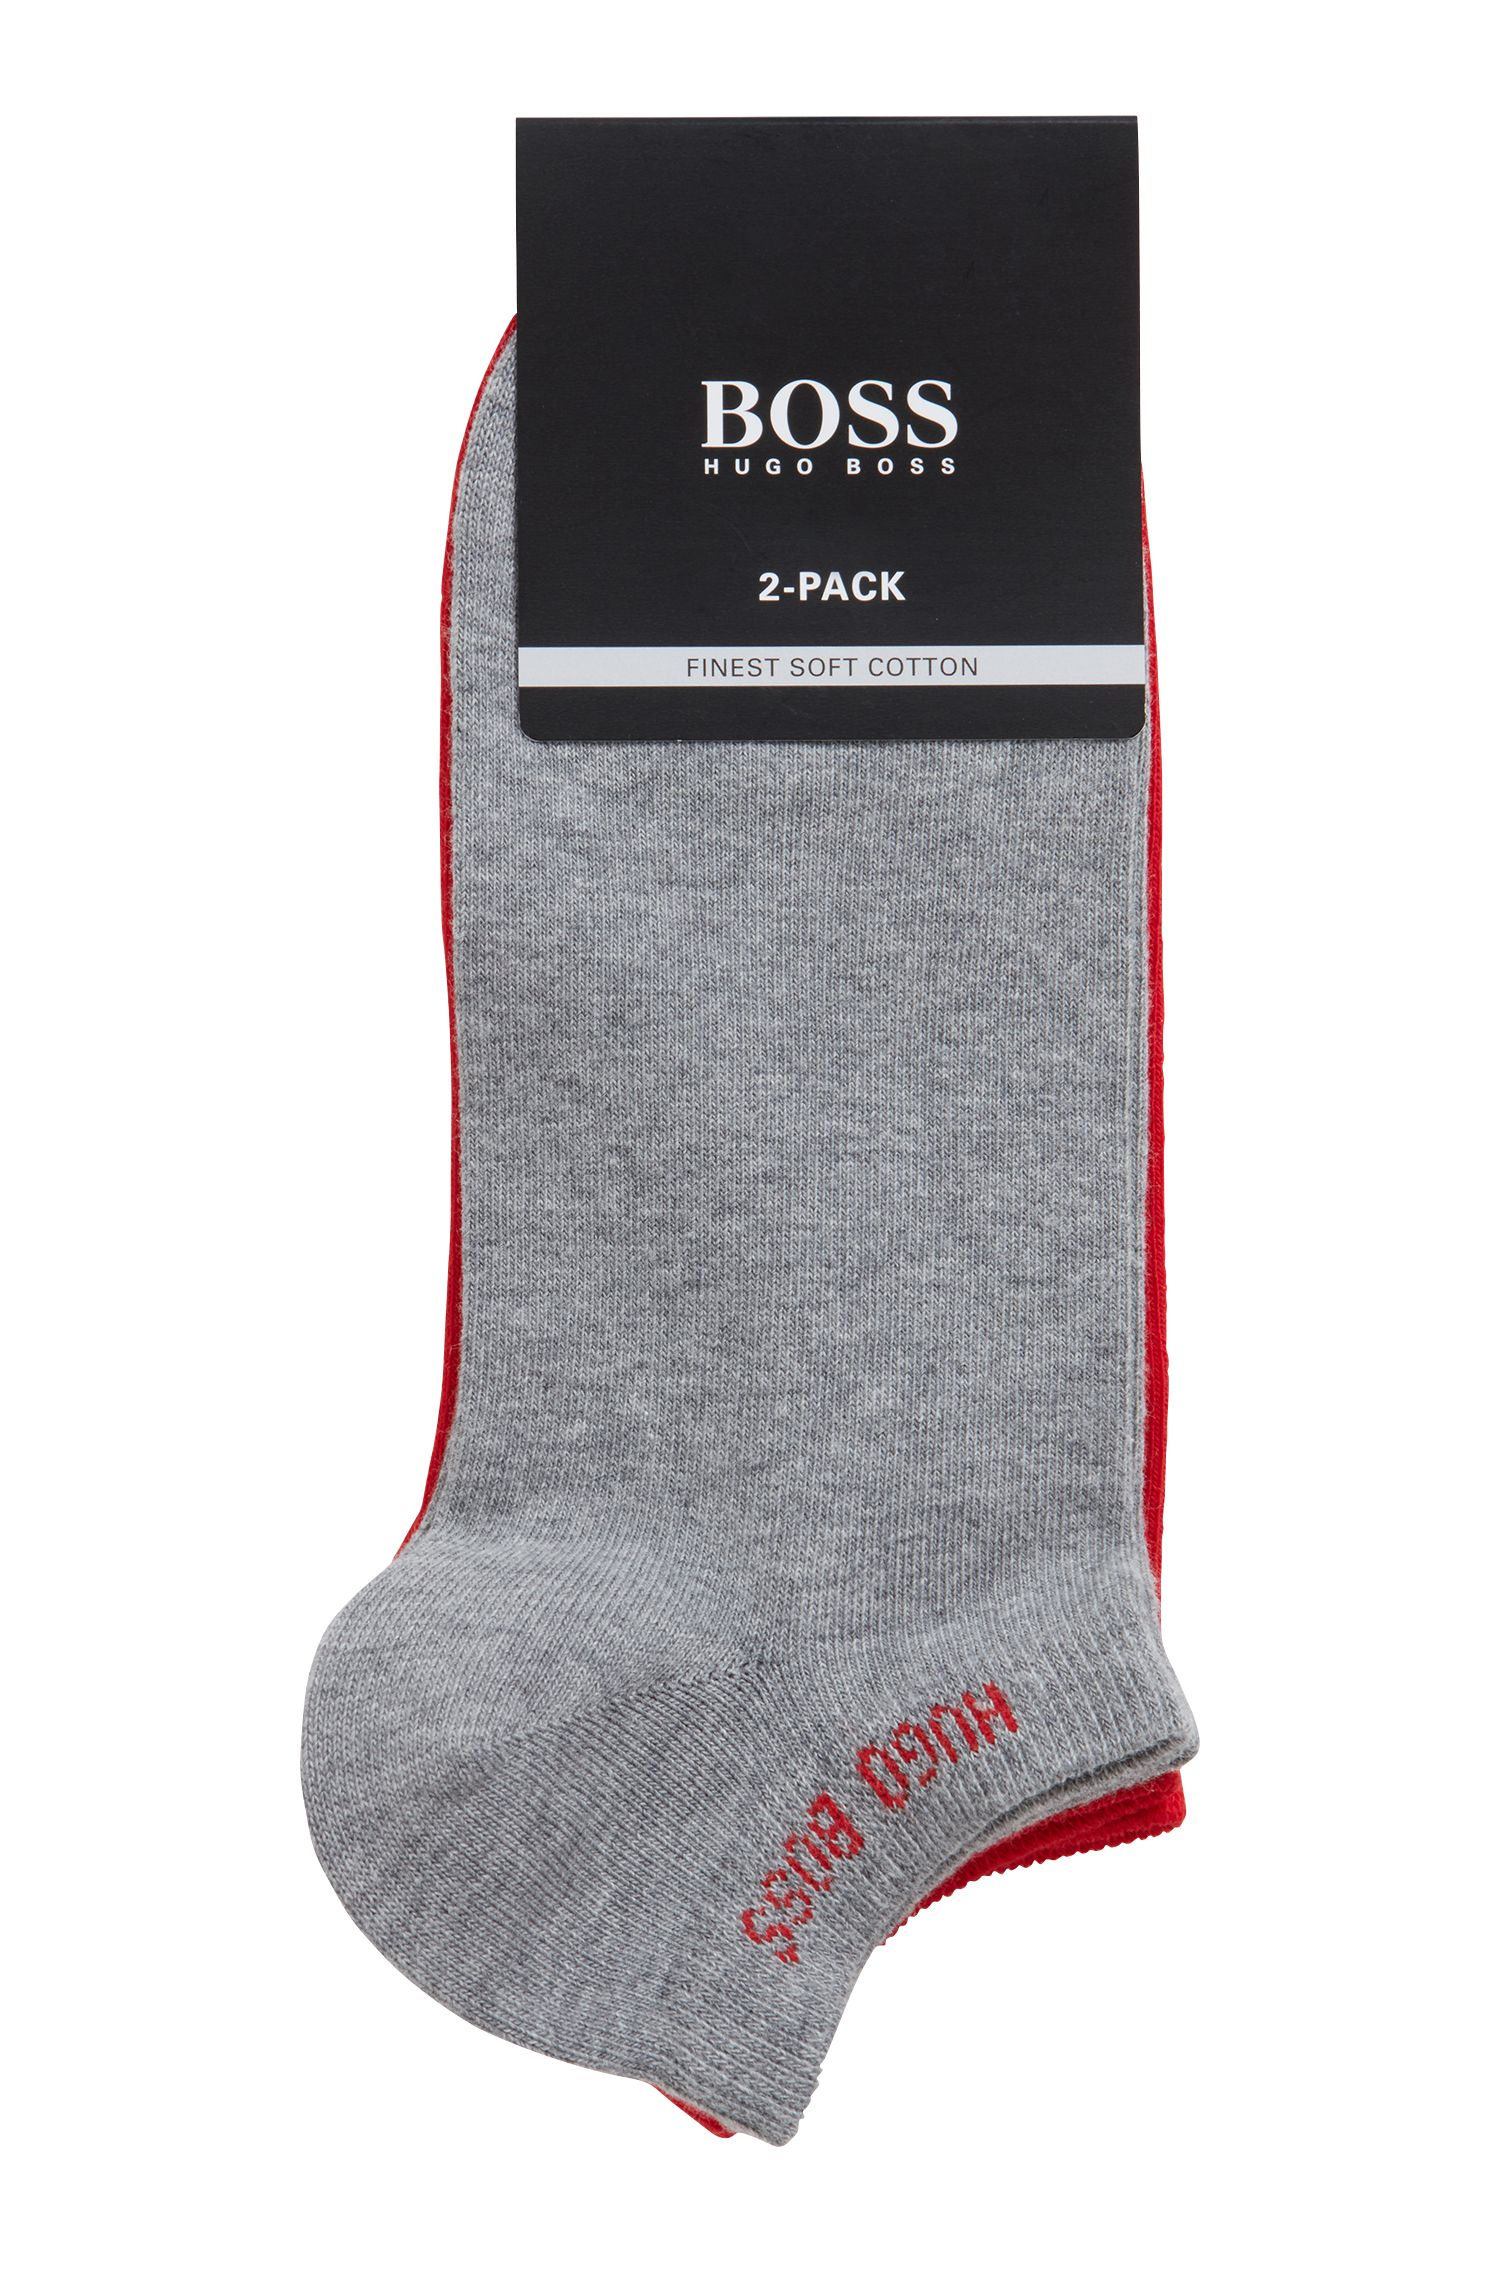 Two-pack of ankle socks in a cotton blend, Silver